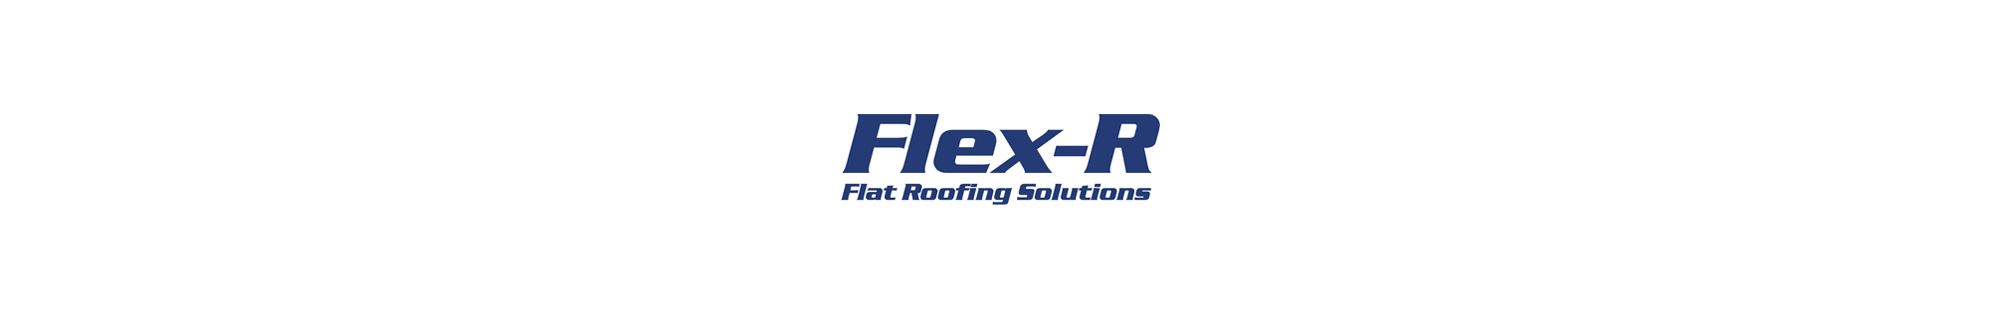 Flexr roofing, membranes, waterproofing sheets, roof membranes, roofing materials, supplies